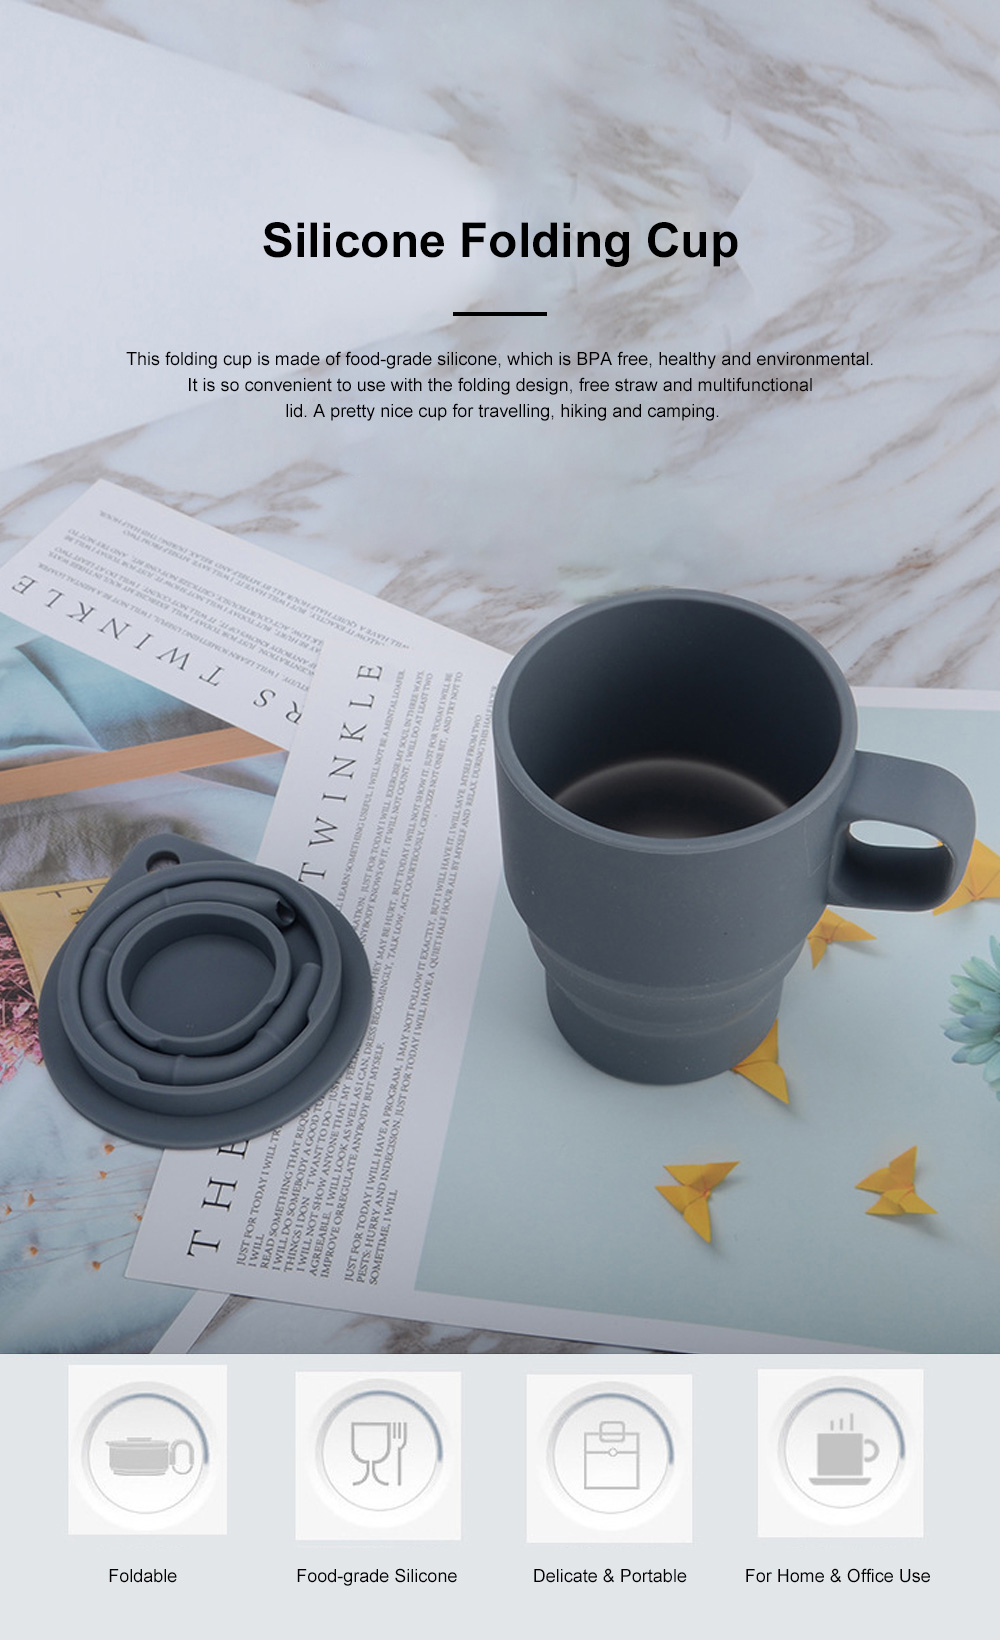 Silicone Folding Mug Cup Collapsible Silicone Coffee Cup with Free Straw Lid for Hiking Camping Travelling 0